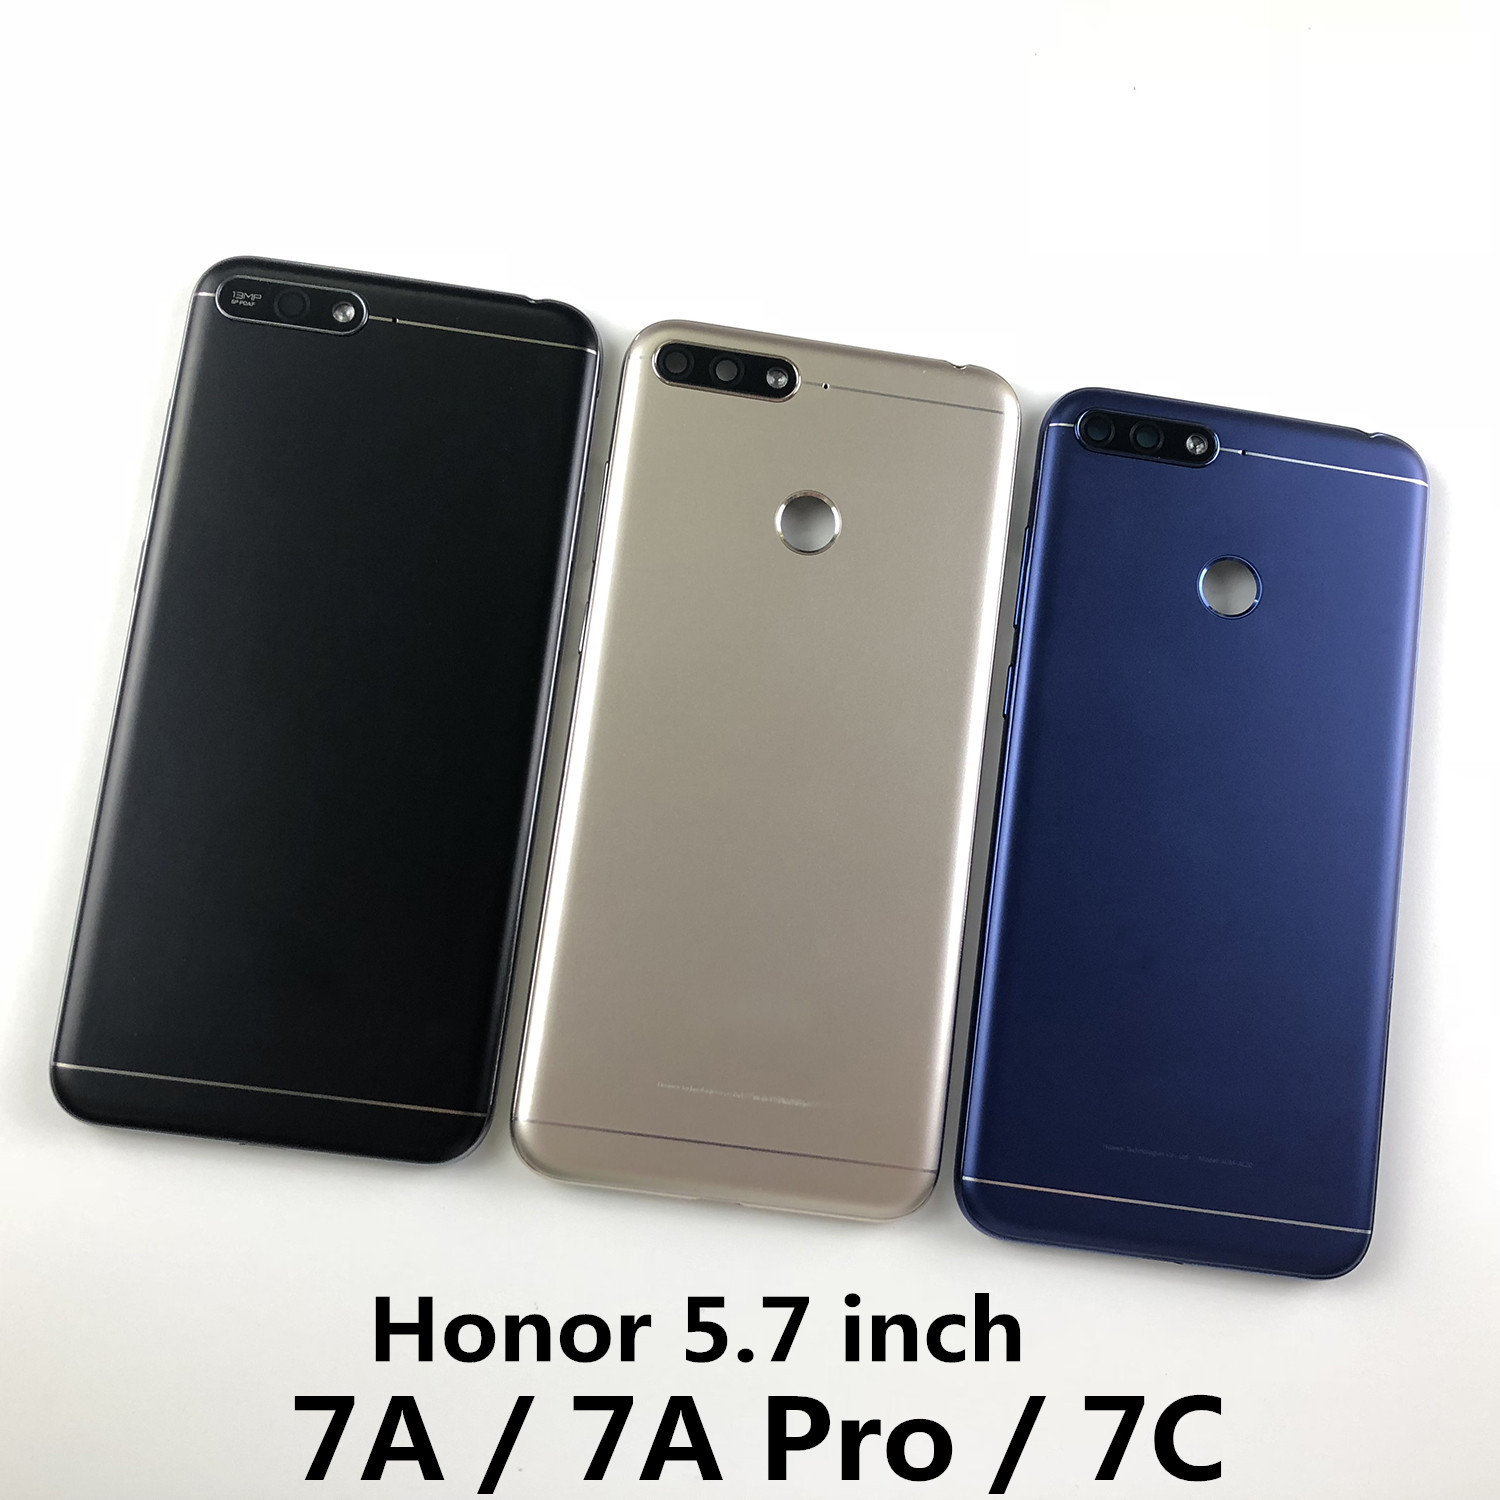 For Huawei Honor 7A Pro Aum-l29 / Honor 7C Aum-L41 / Honor 7A Housing Battery Cover Back Cover And Power Volume Buttons+logo